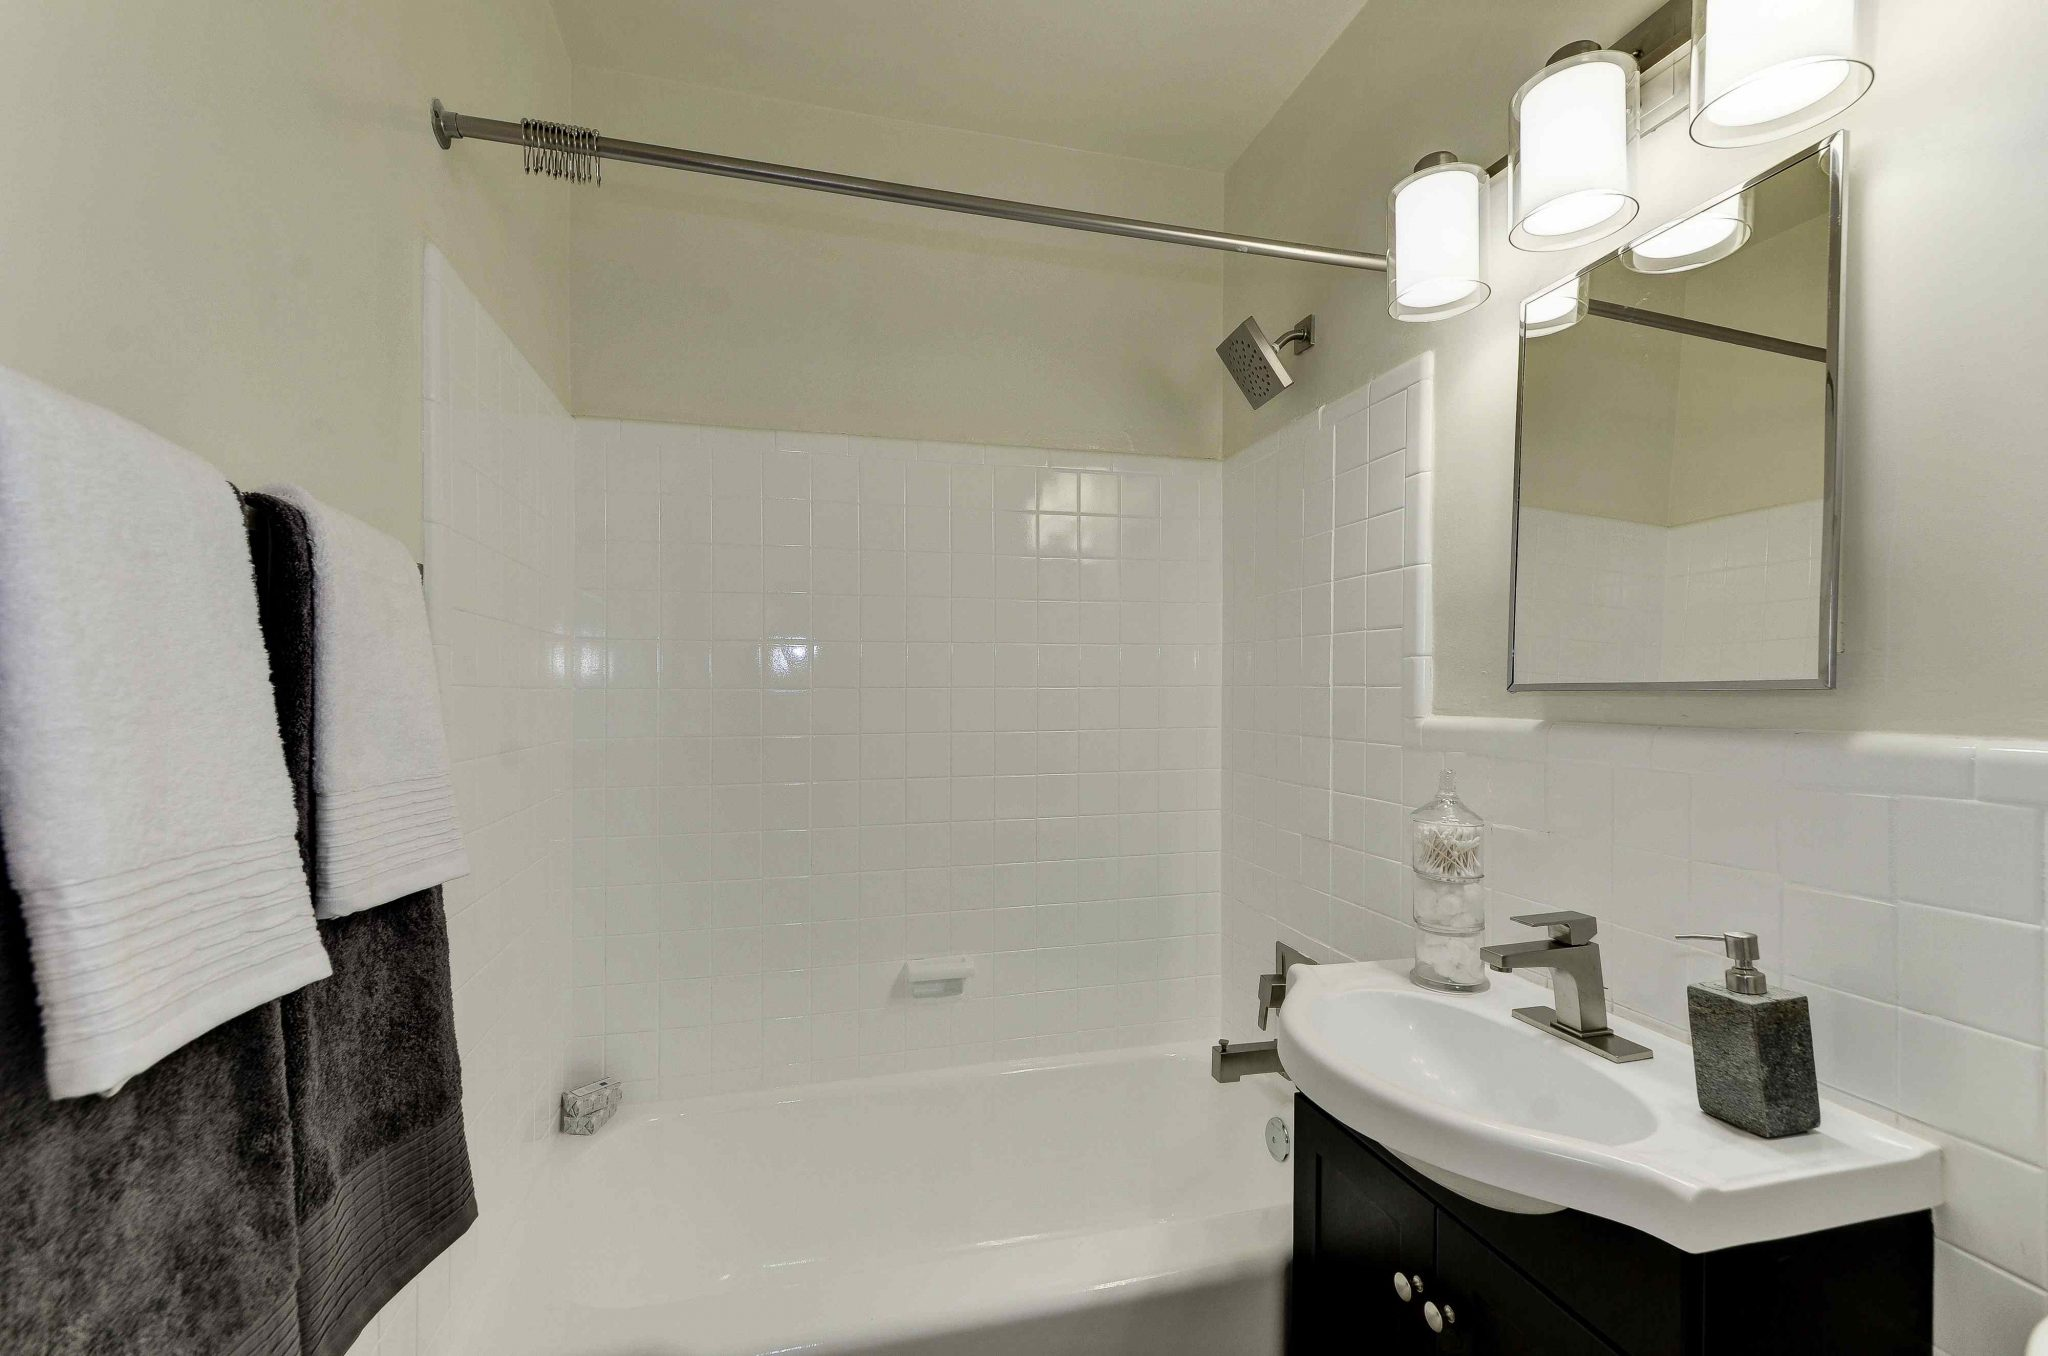 Apartments For Rent With All Utilities Included In Washington Dc